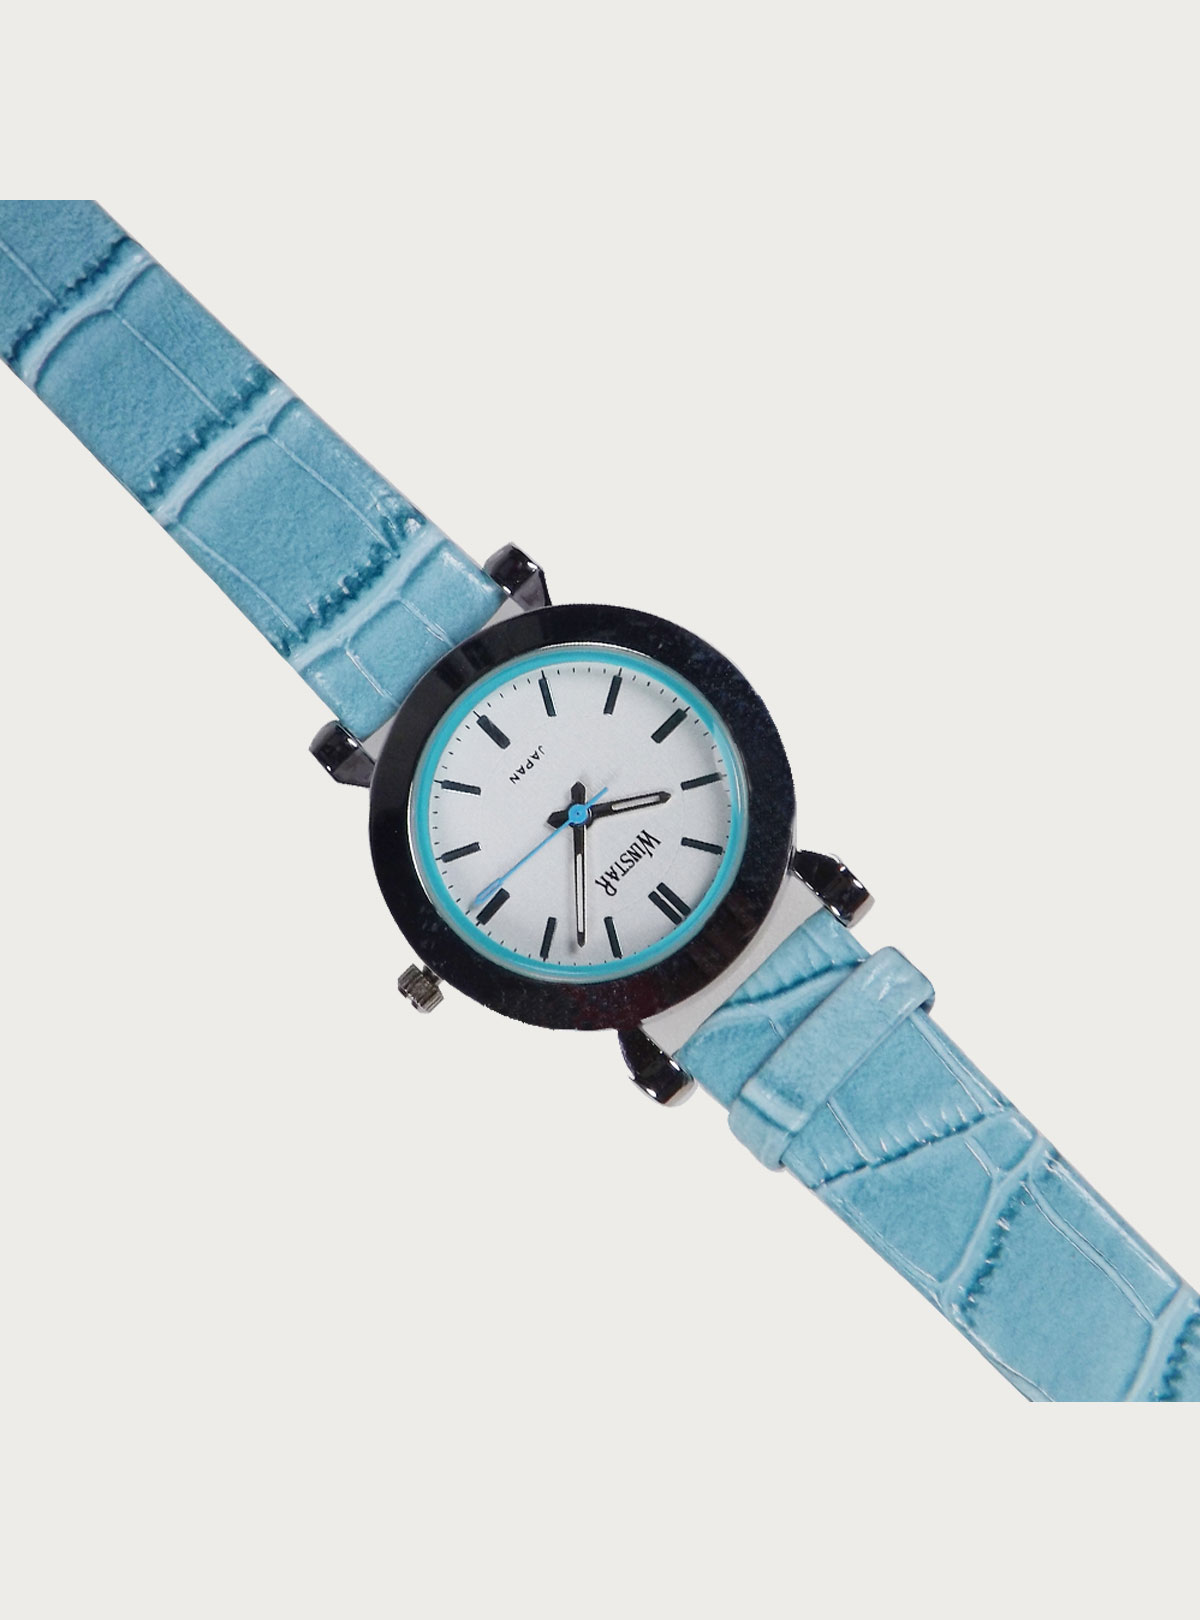 Winstar Ladies Watch 882 Blue